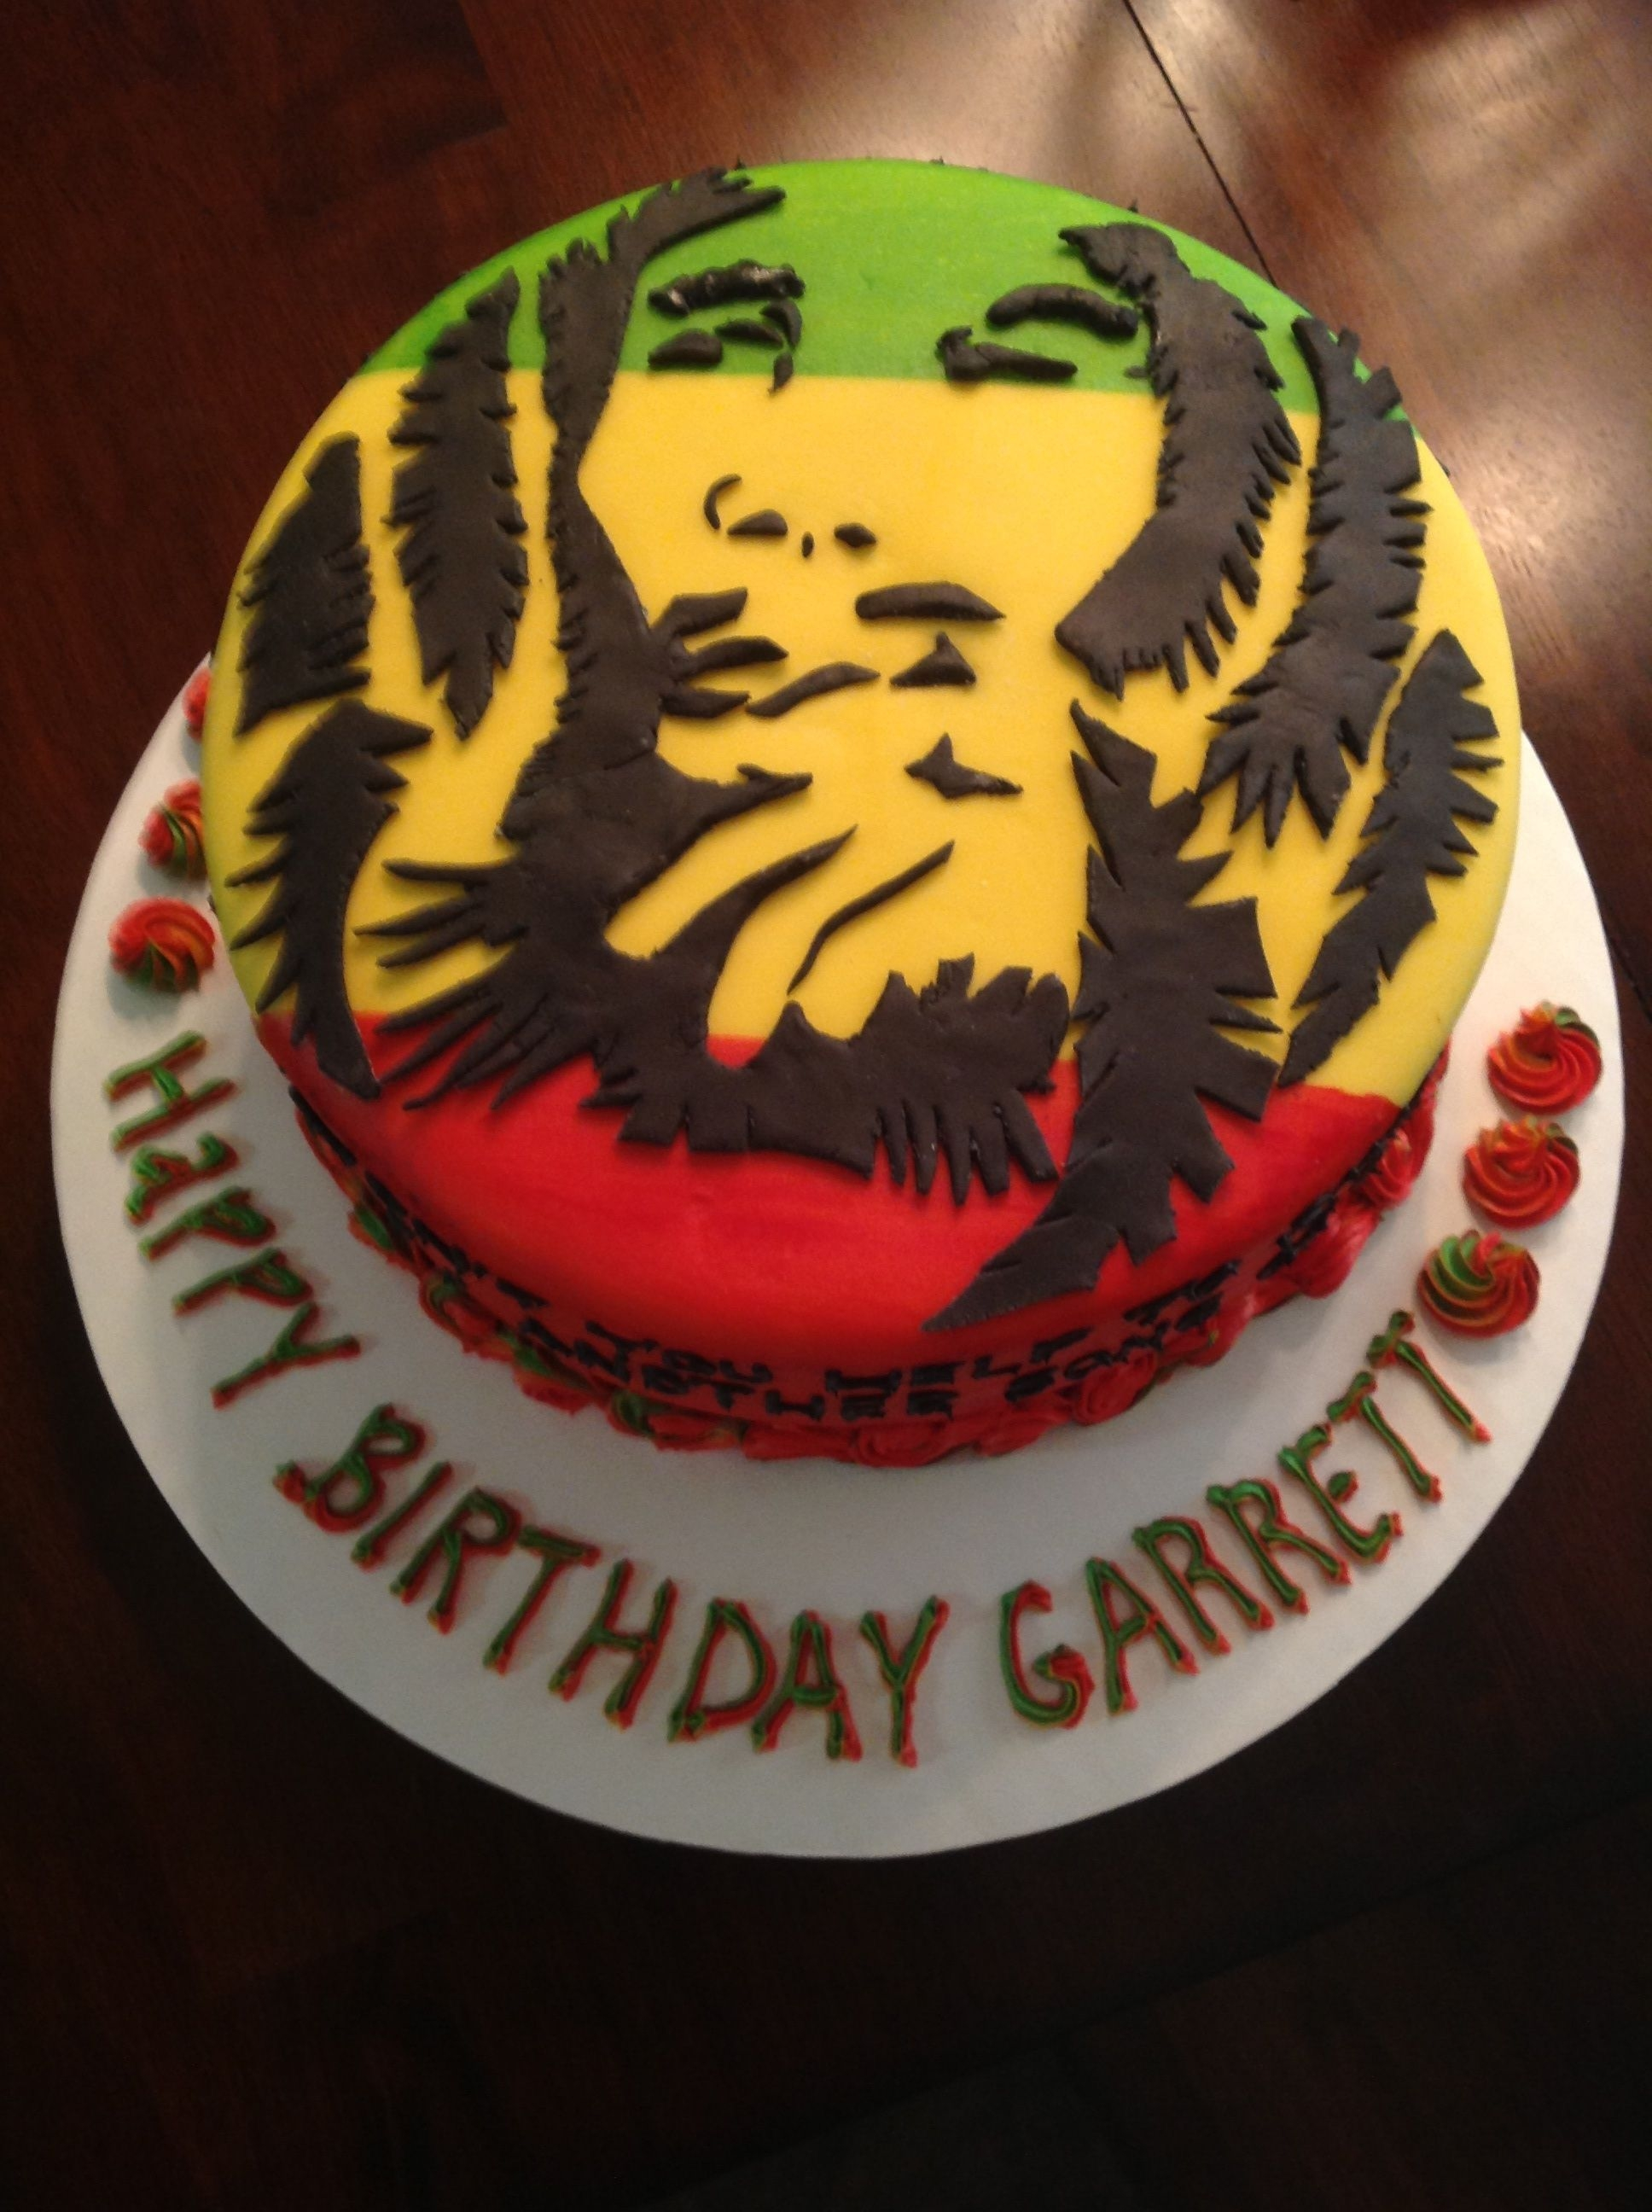 Pleasing Bob Marley Birthday Cakecentral Com Personalised Birthday Cards Veneteletsinfo